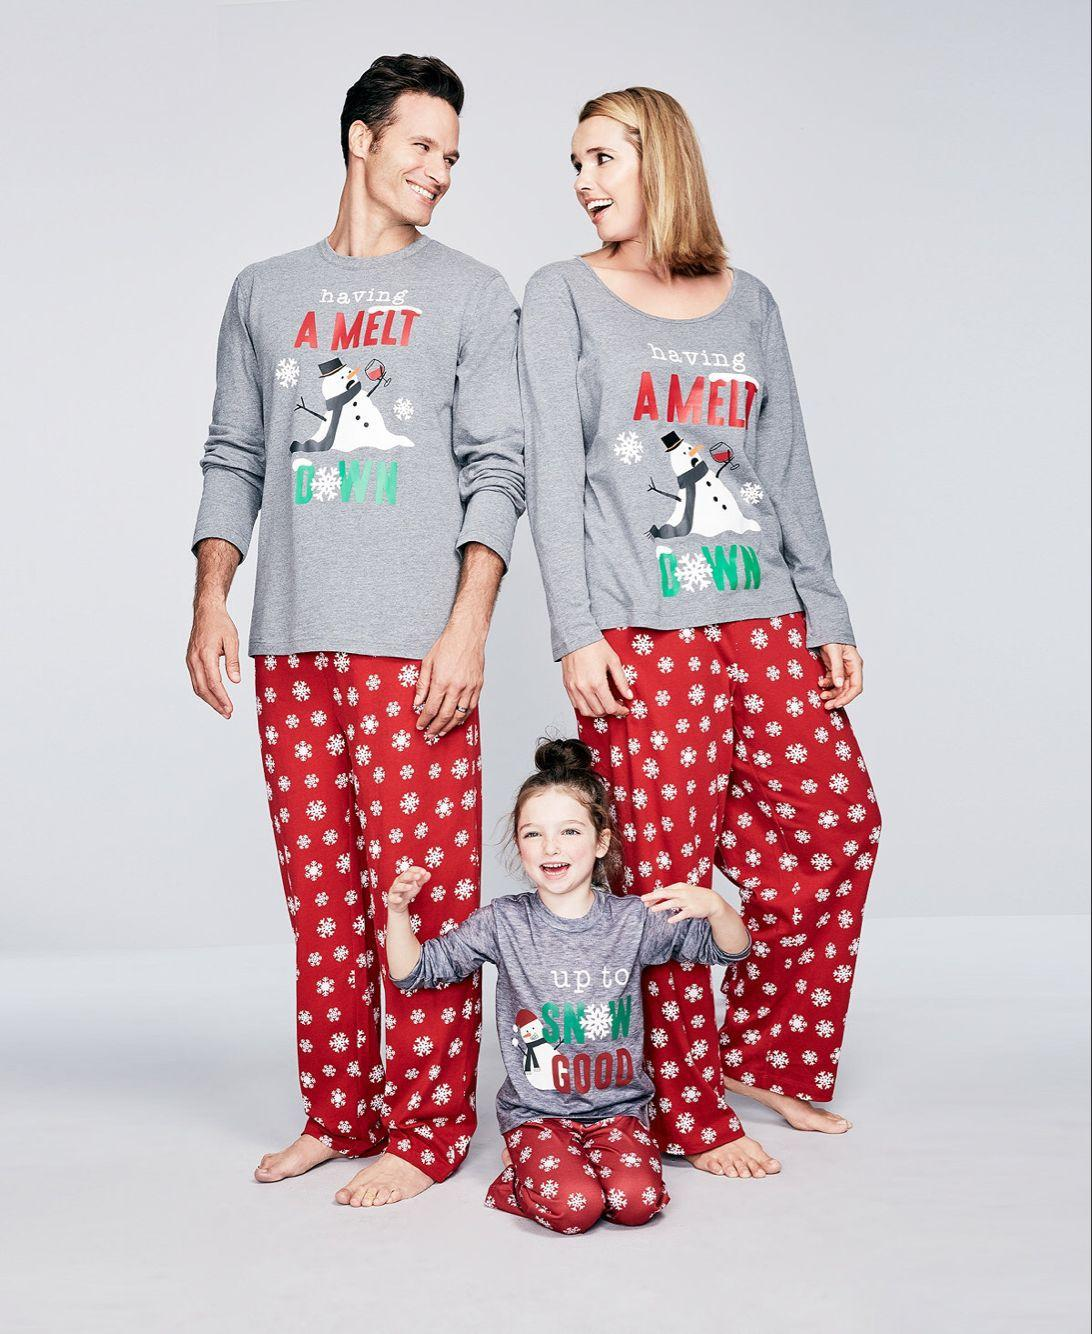 Christmas Pjs.Family Matching Christmas Pajamas Set Up To Snow Goodandhaving A Melt Downtops And Long Pants Sleepwear For Family Matching Shirts For Family Family